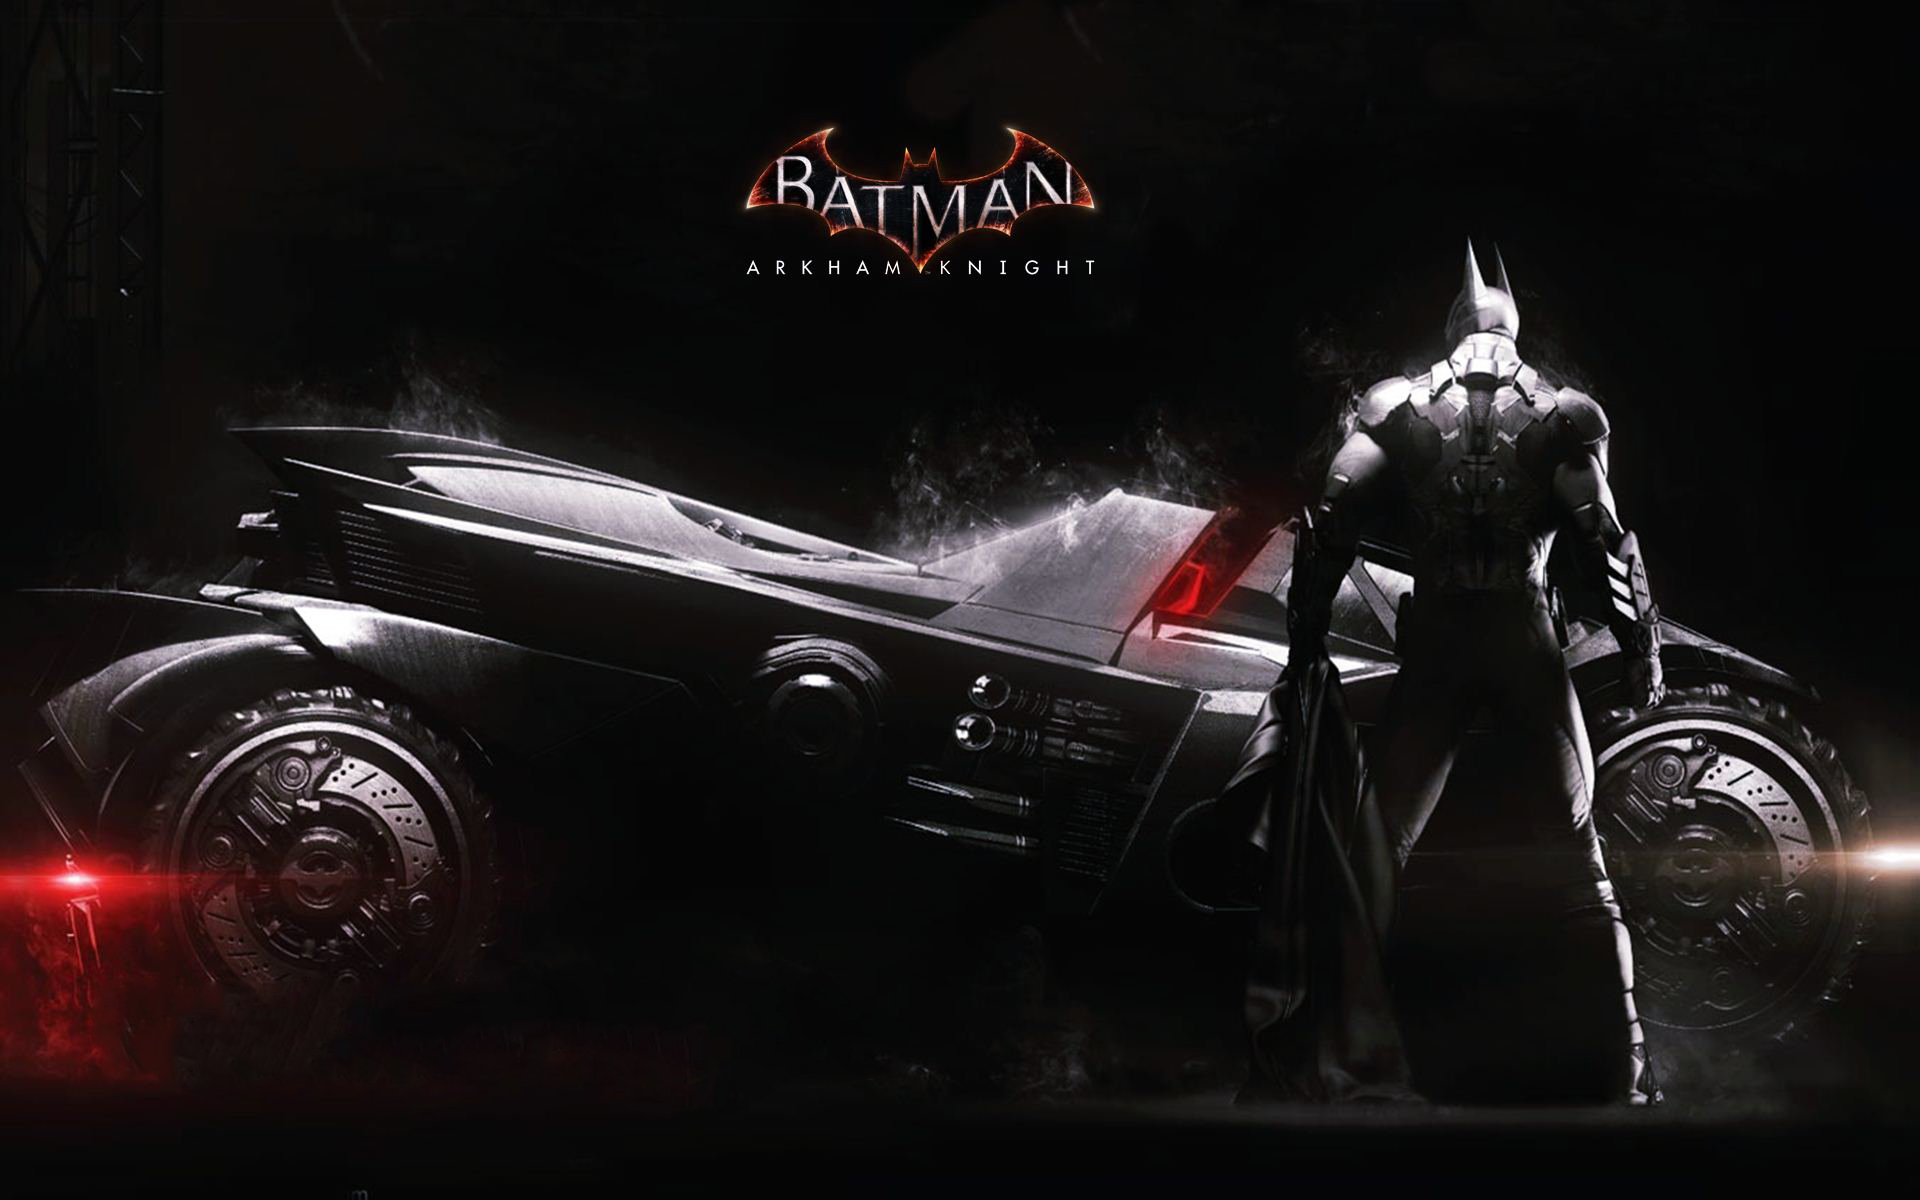 2014 Batman Arkham Knight Batmobile Exclusive HD Wallpapers 6463 1920x1200